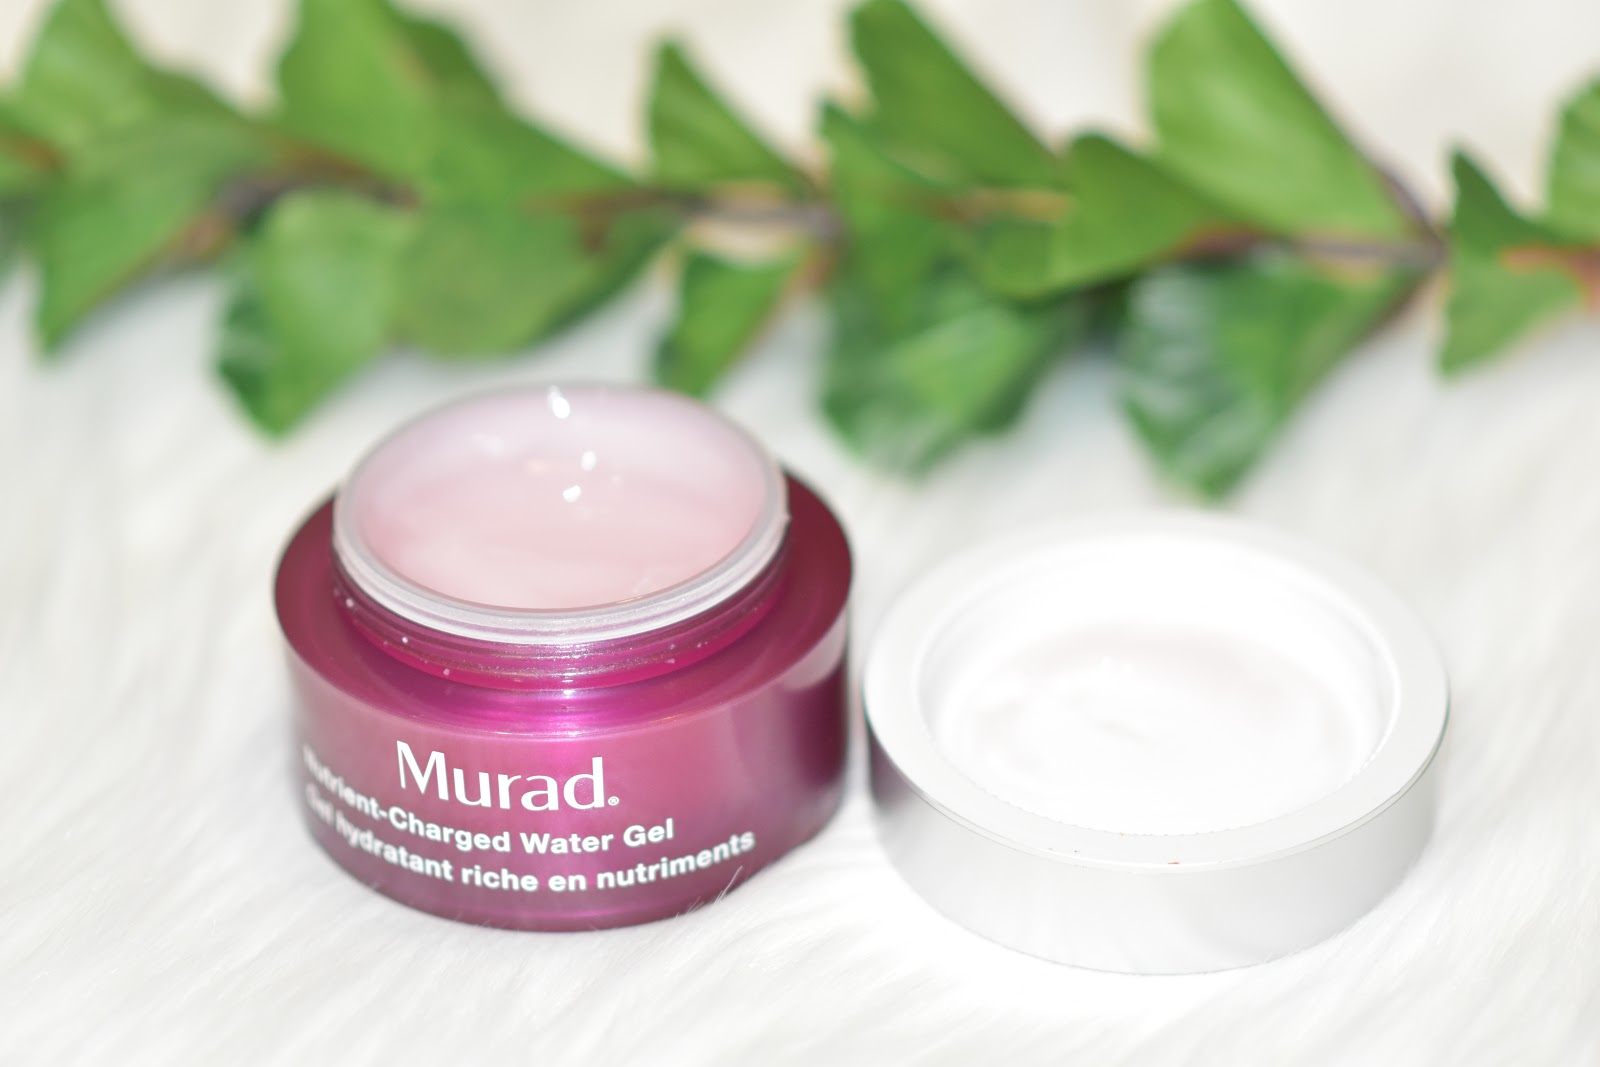 Murad Nutient-Charged Water Gel_AimforGlam